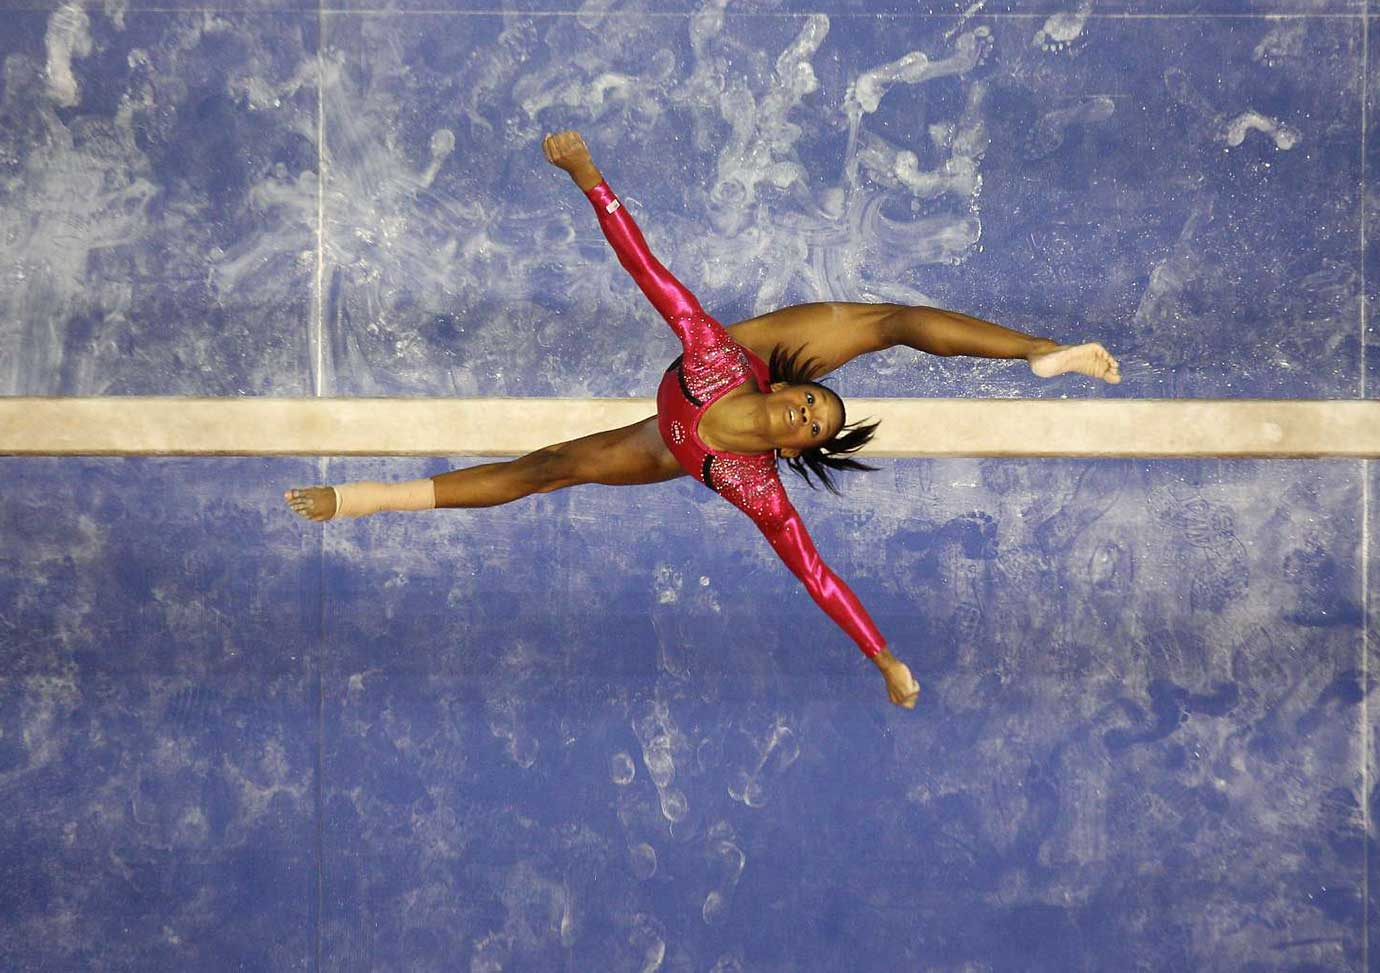 Gabby Douglas at the 2012 U.S. Olympic gymnastics trials.